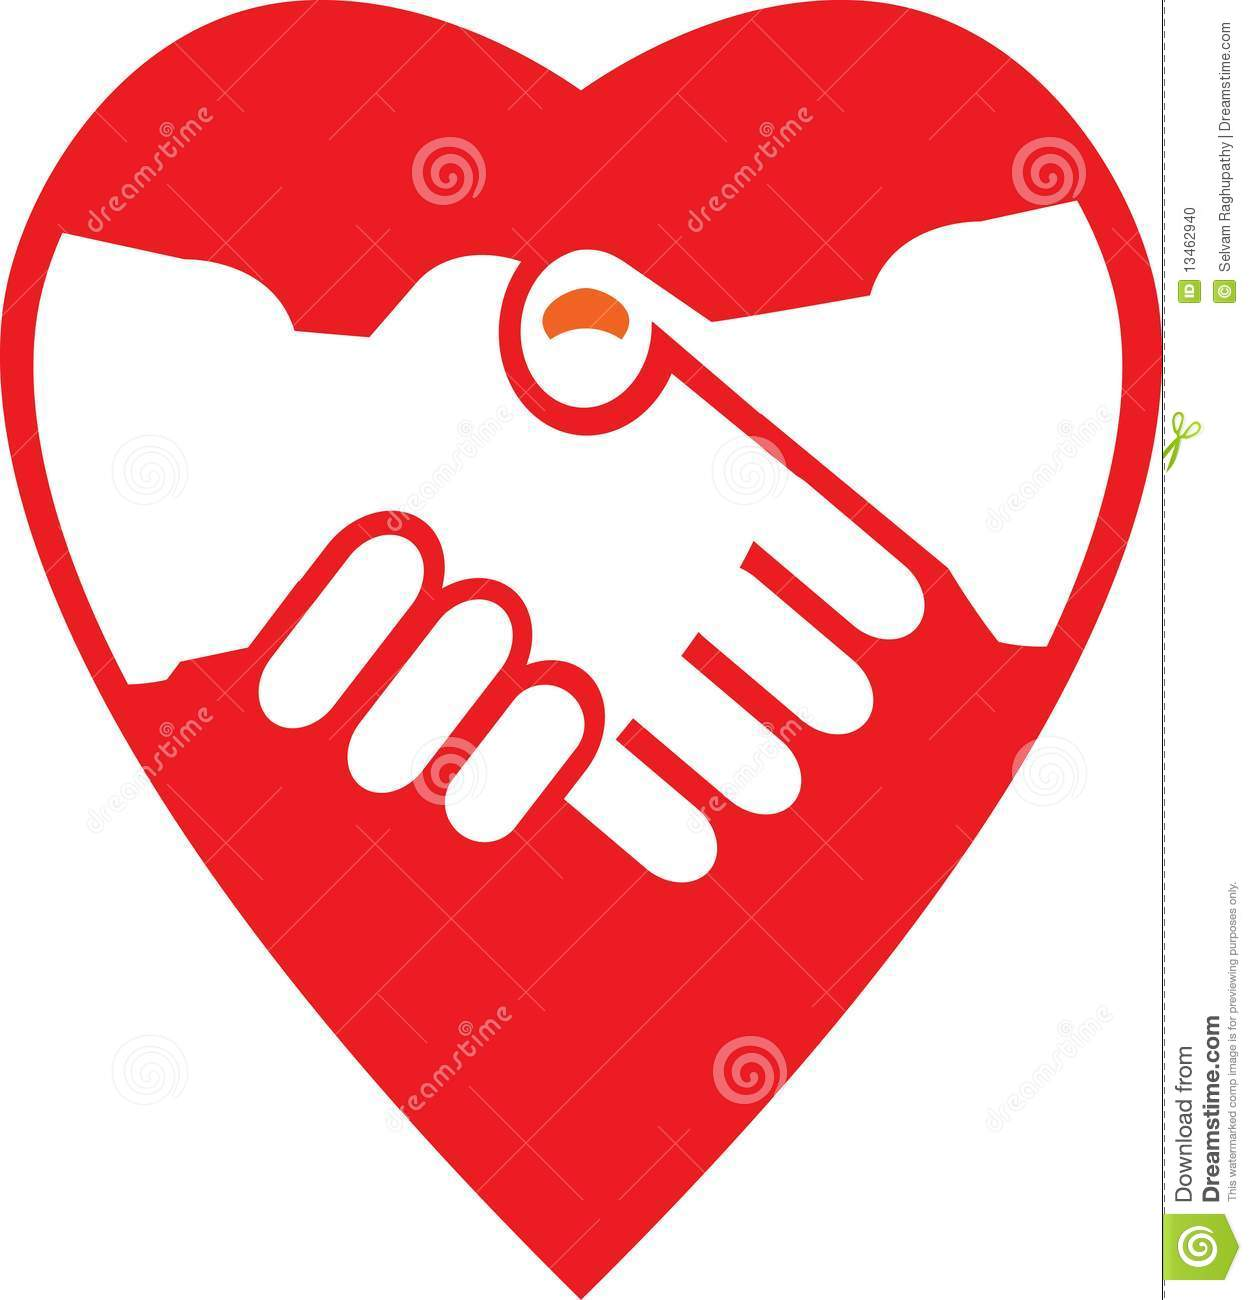 Cute handshaking image with heart symbol illustrated image.